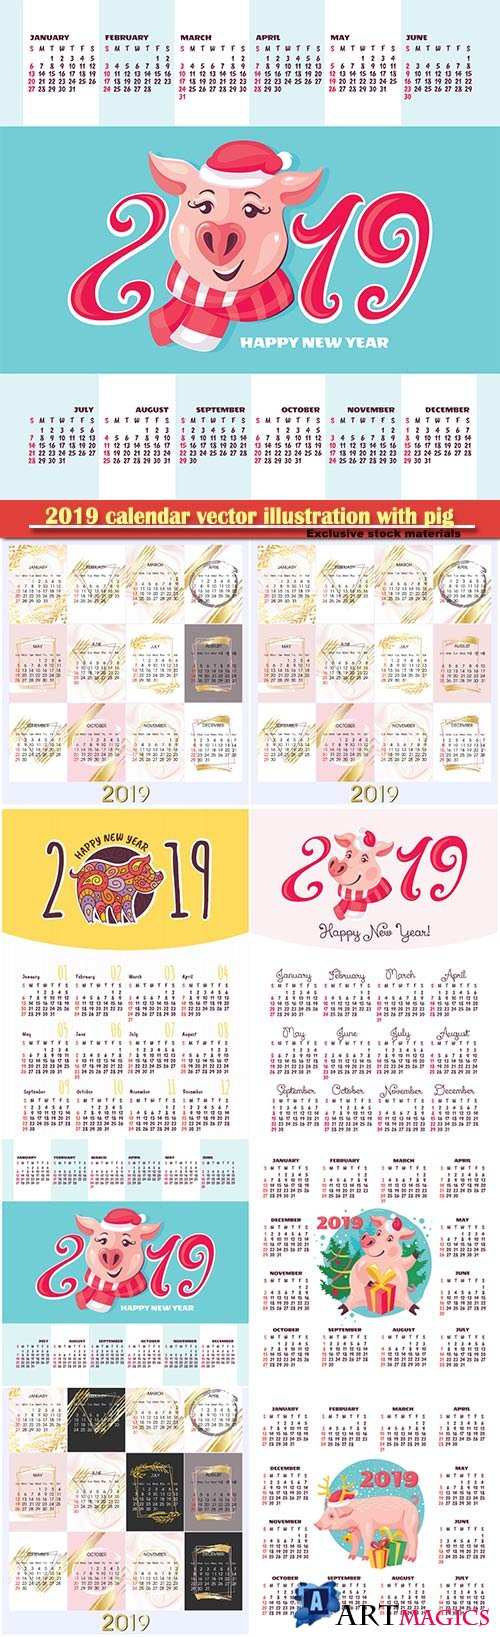 2019 calendar vector illustration with pig